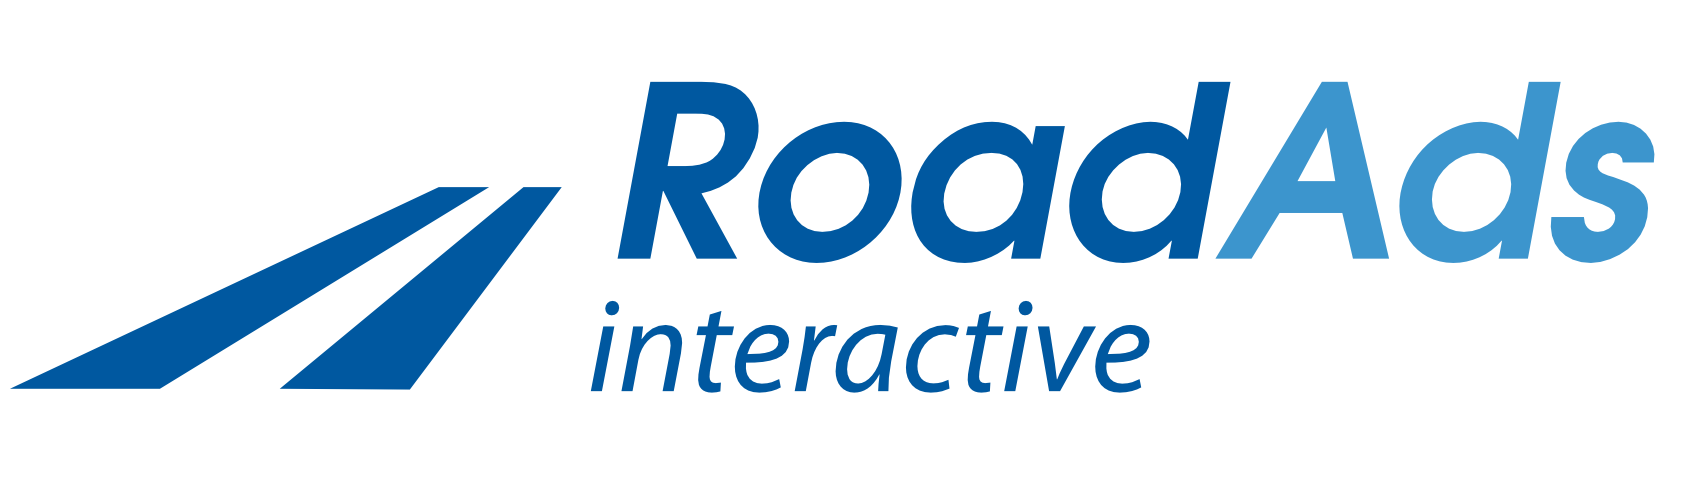 RoadAds interactive Logo